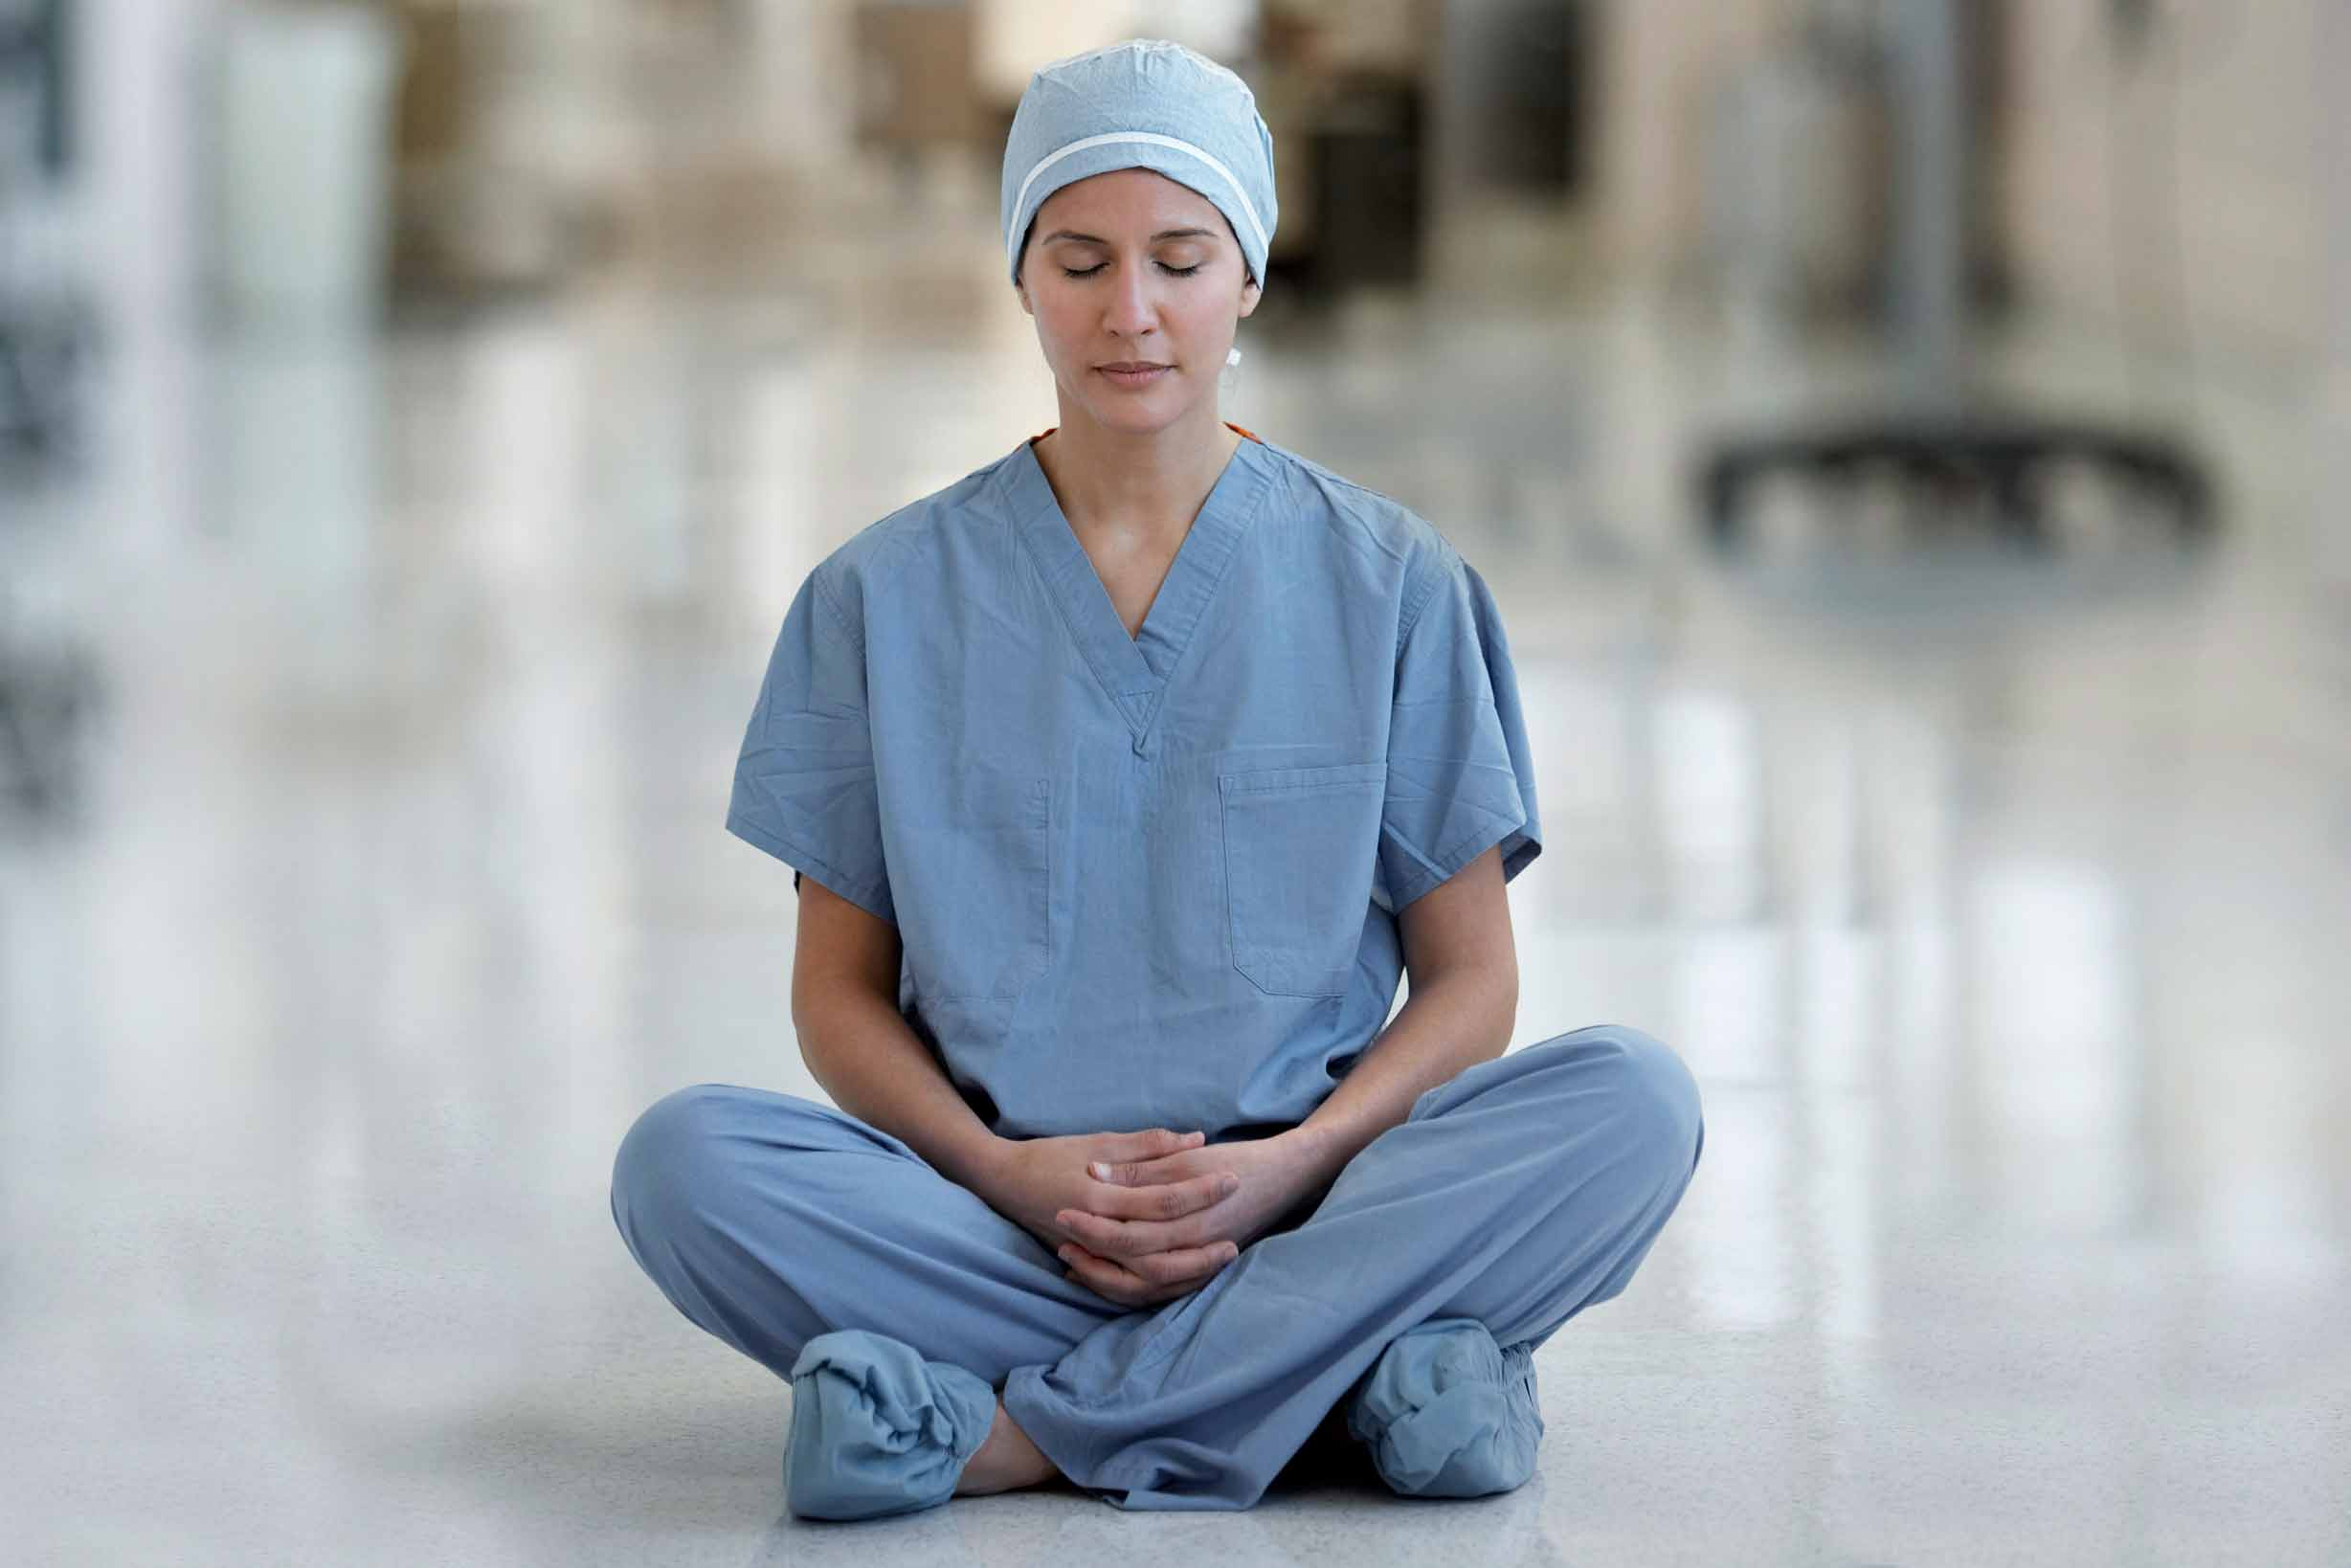 Nurse meditating in a hospital hallway